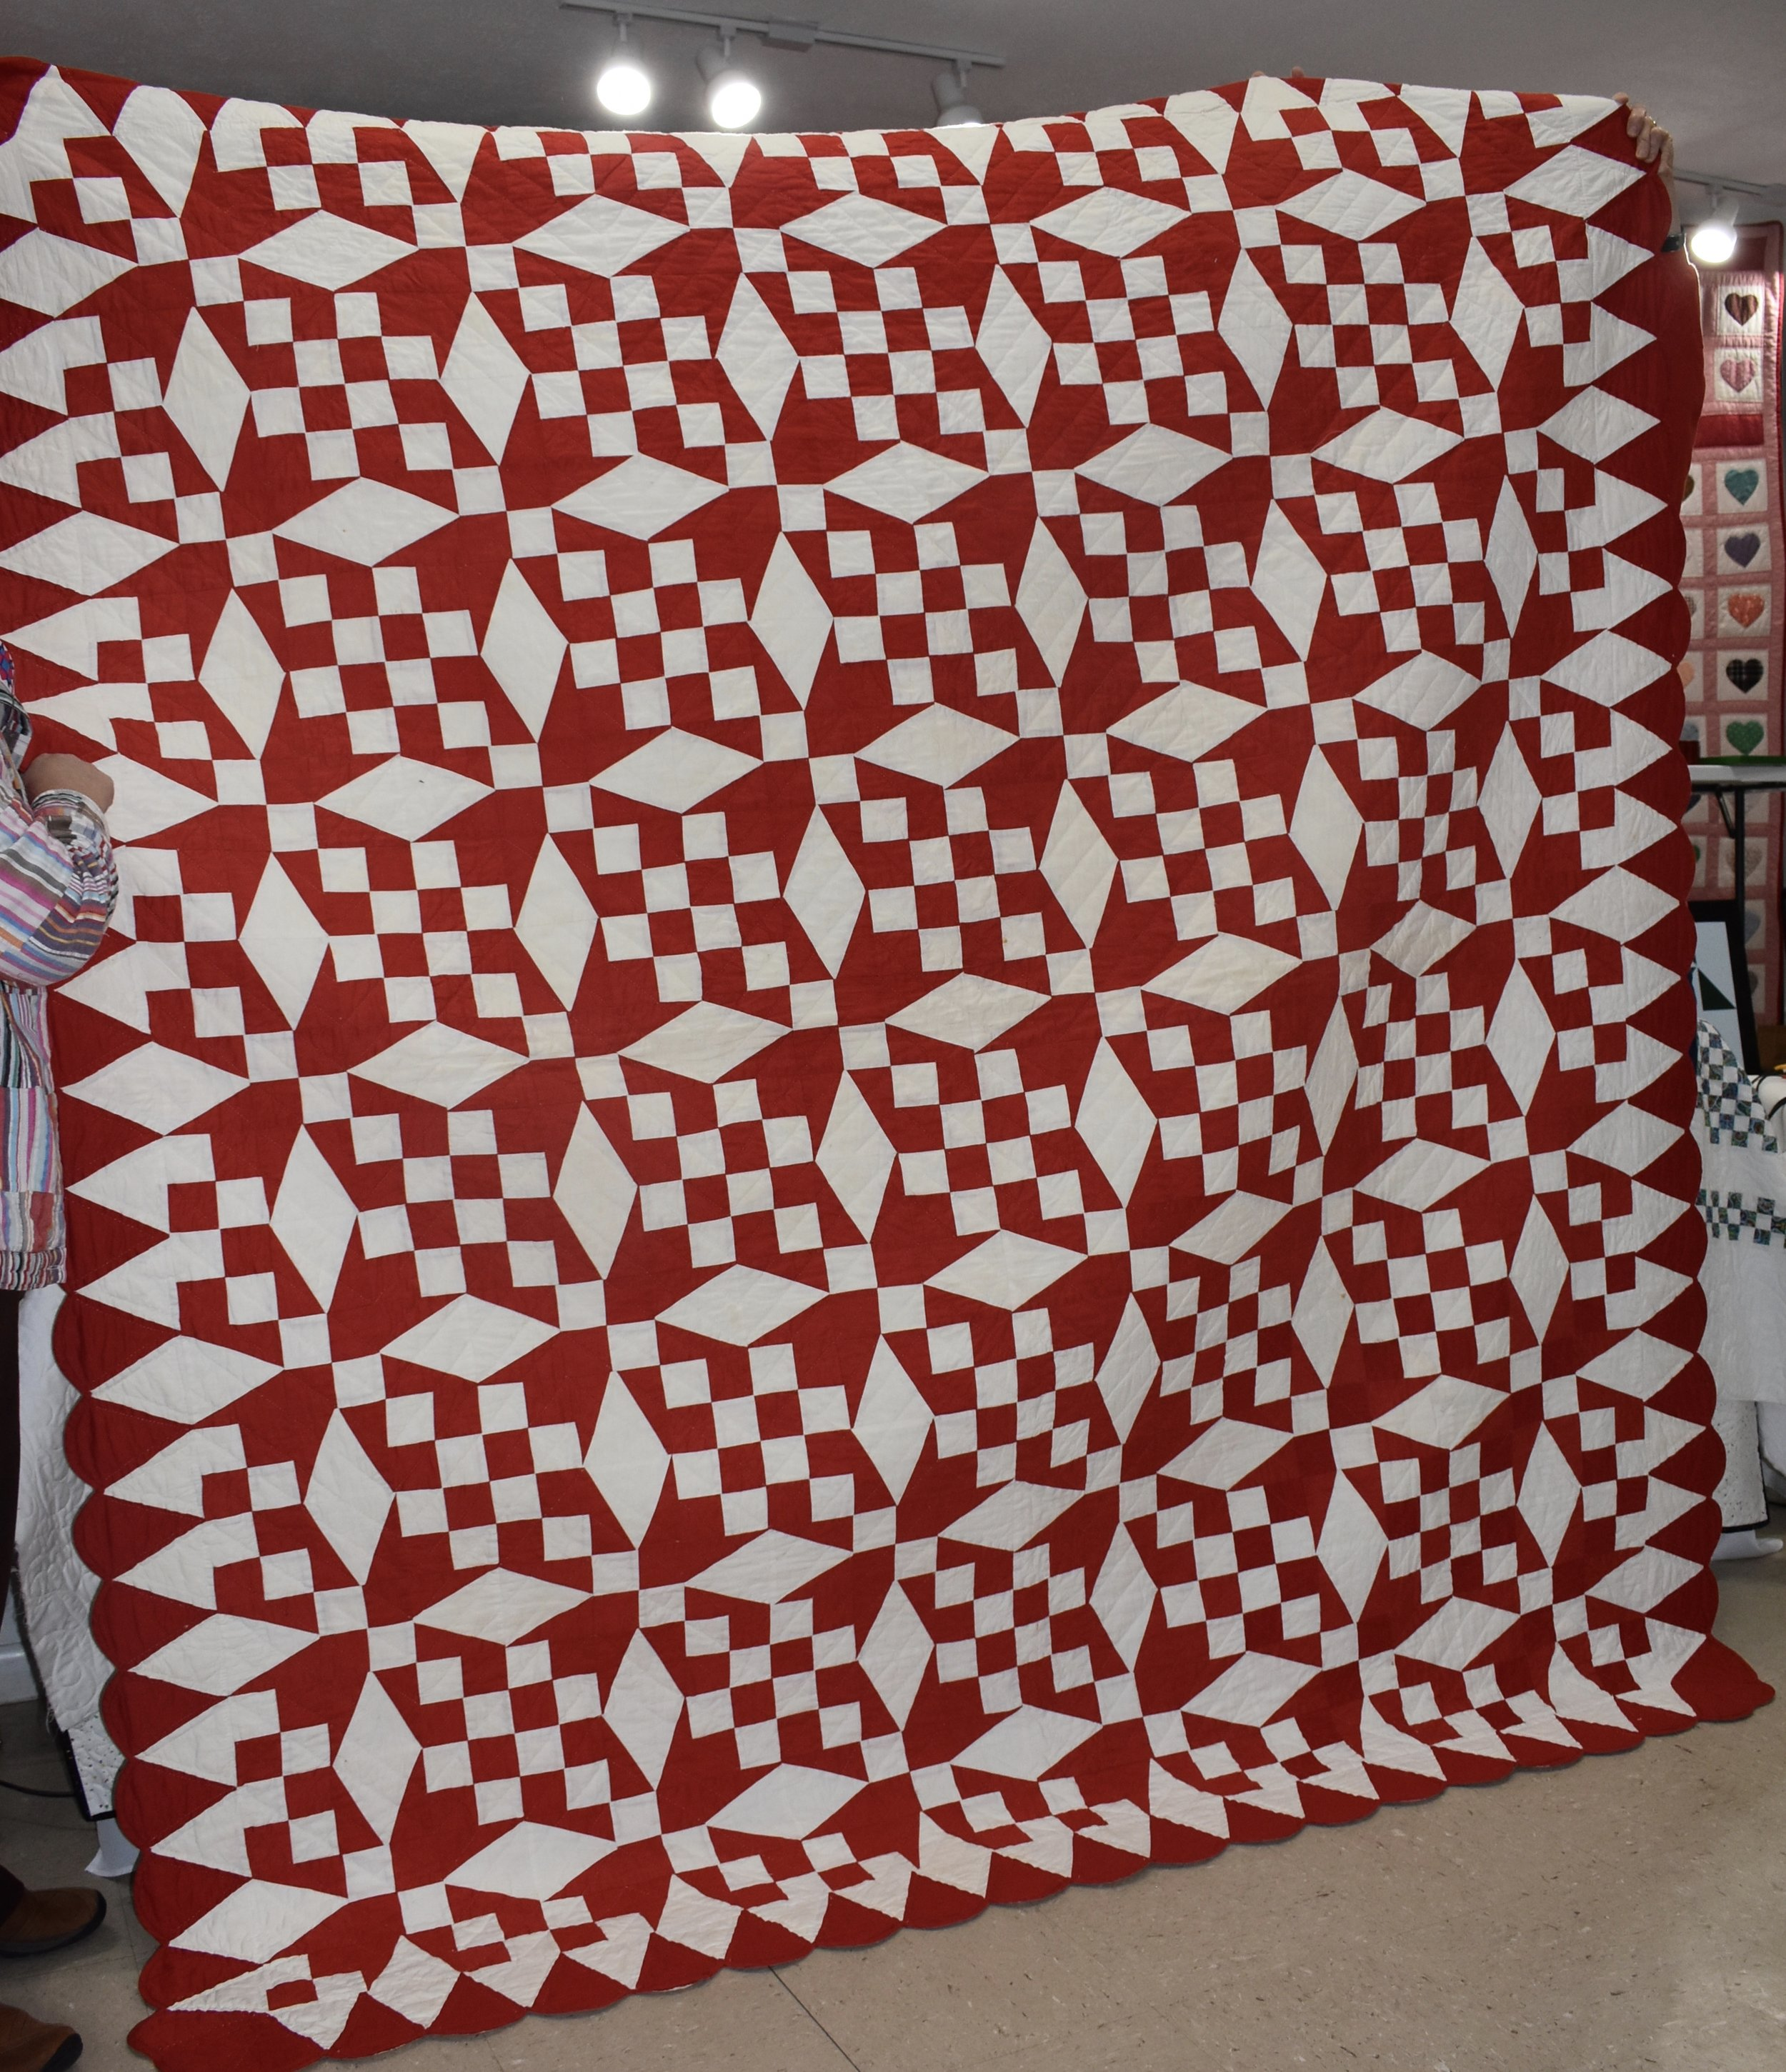 Anna Miller Quilt made by mother and church ladies